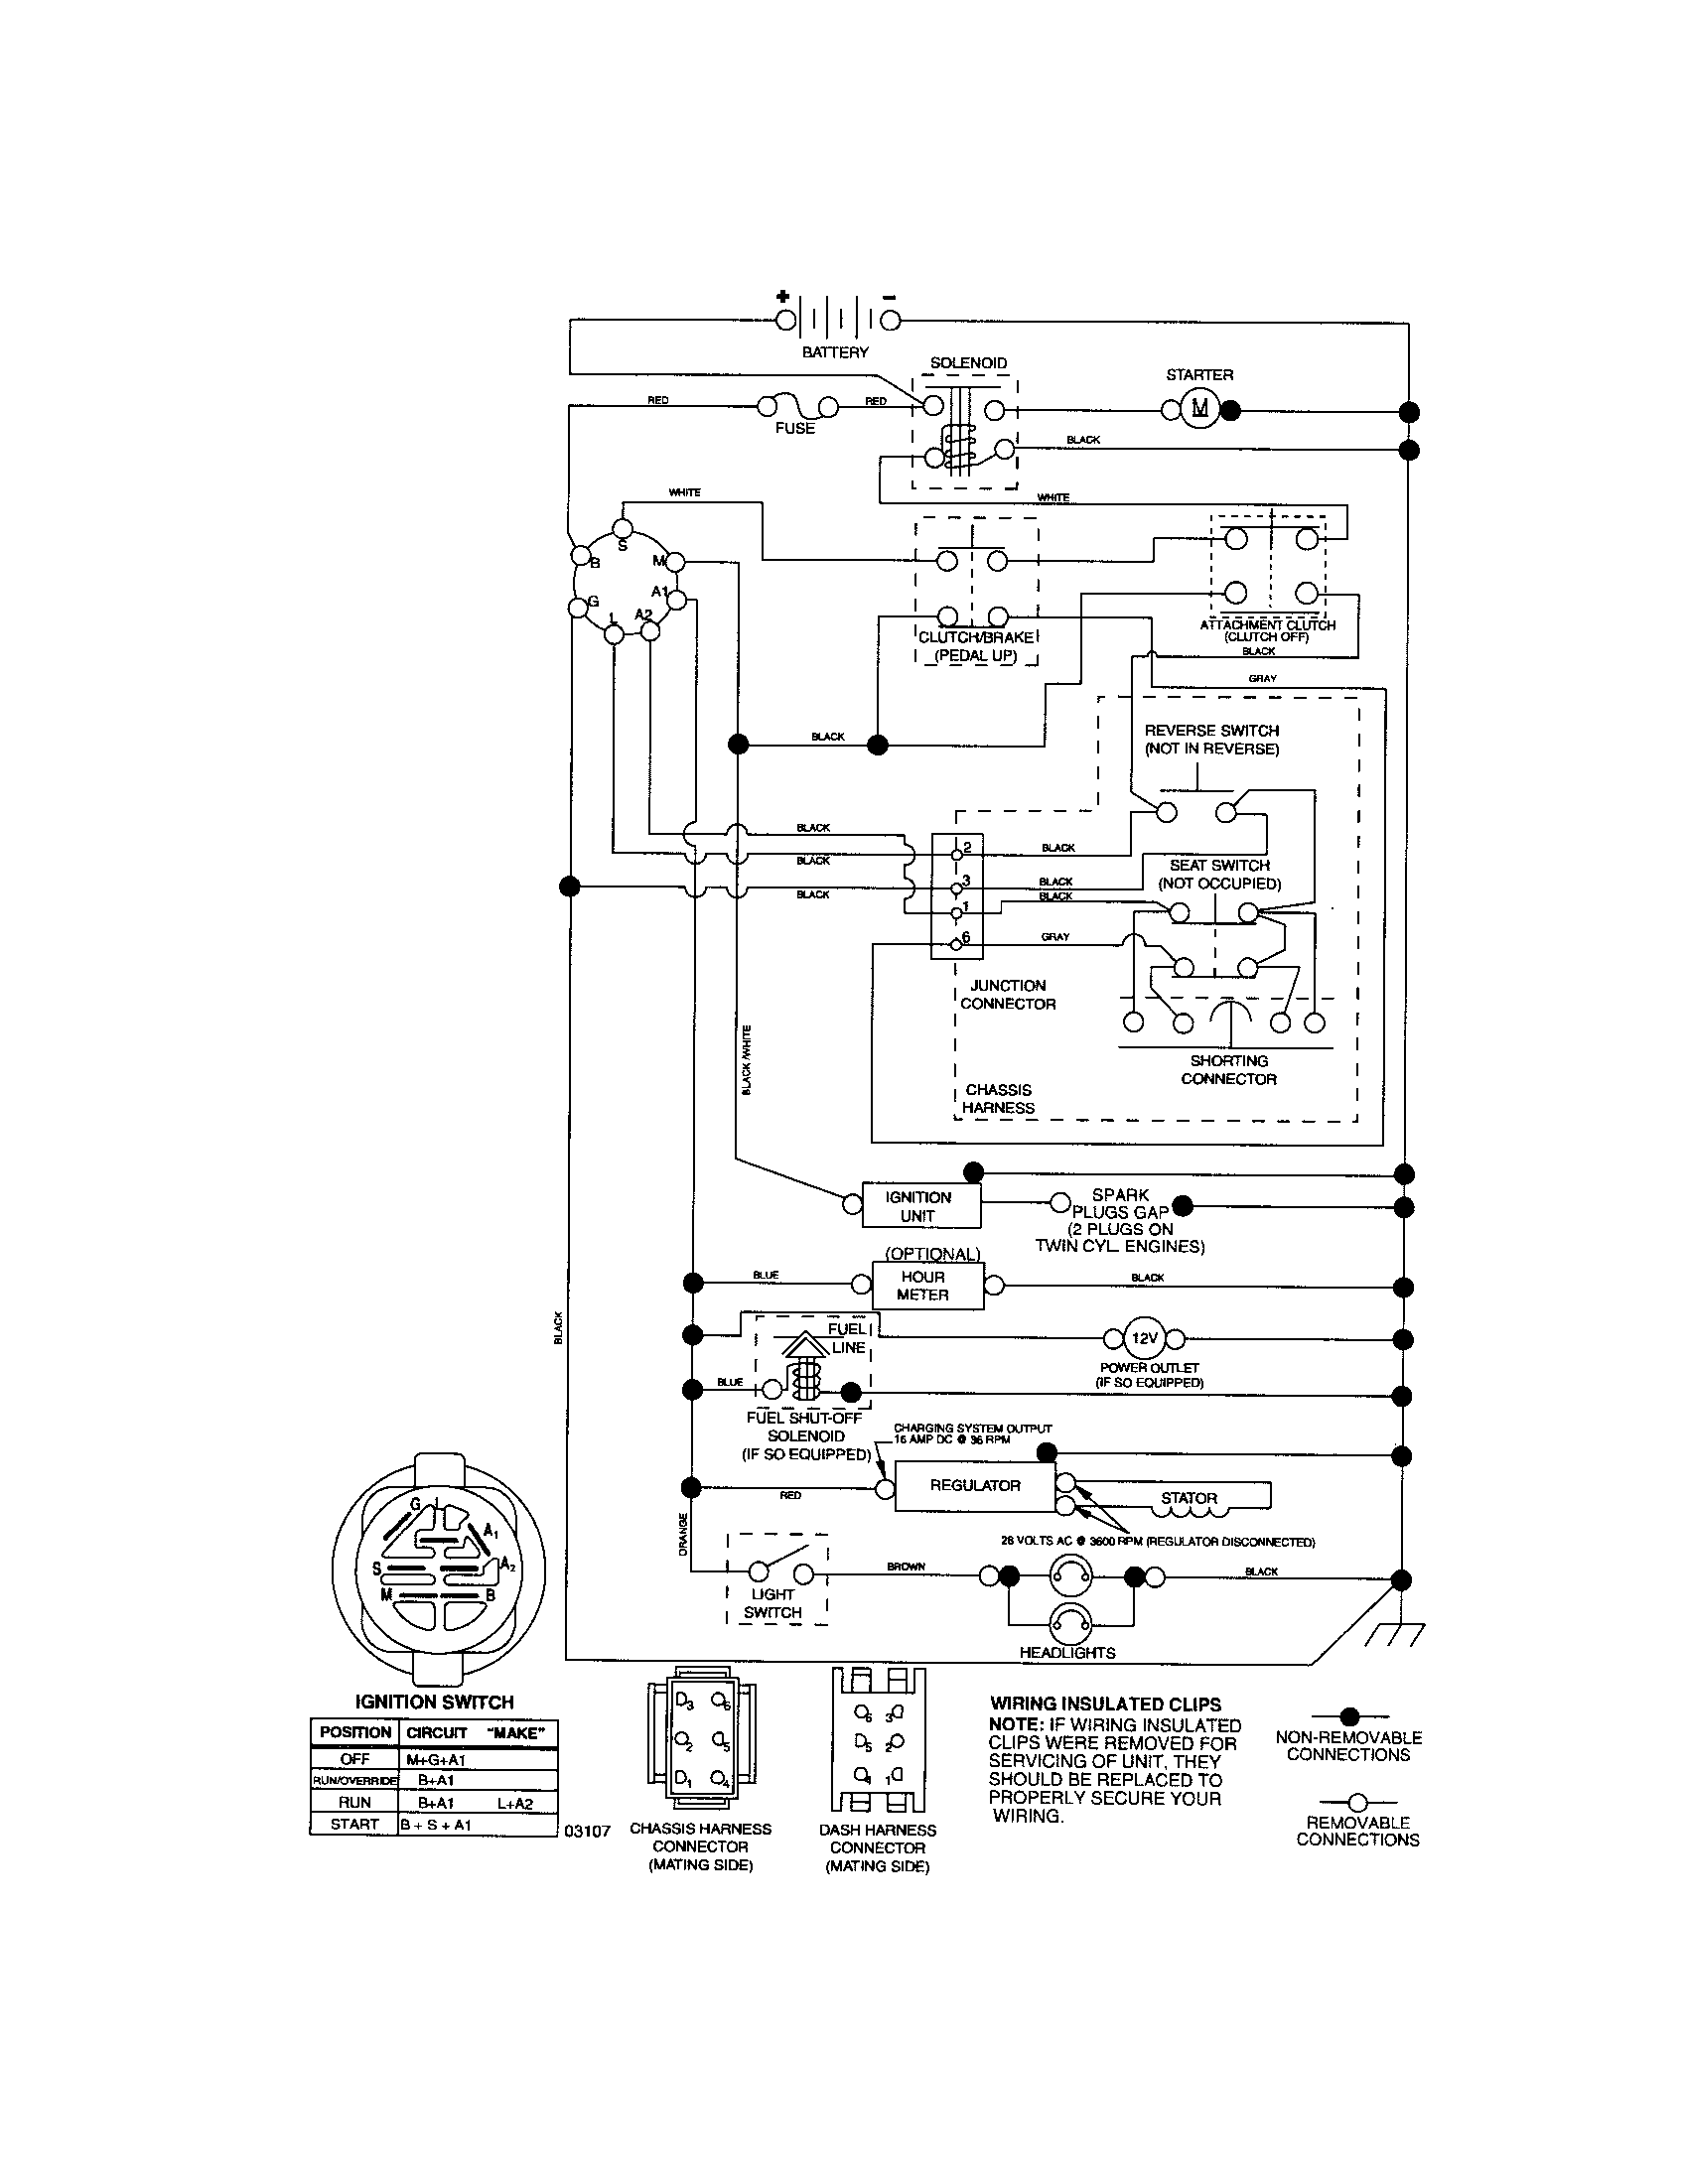 6af5f1447fd13c8443376822ddc1e105 craftsman riding mower electrical diagram wiring diagram Replacing Solenoid for Murray Riding Mower at soozxer.org